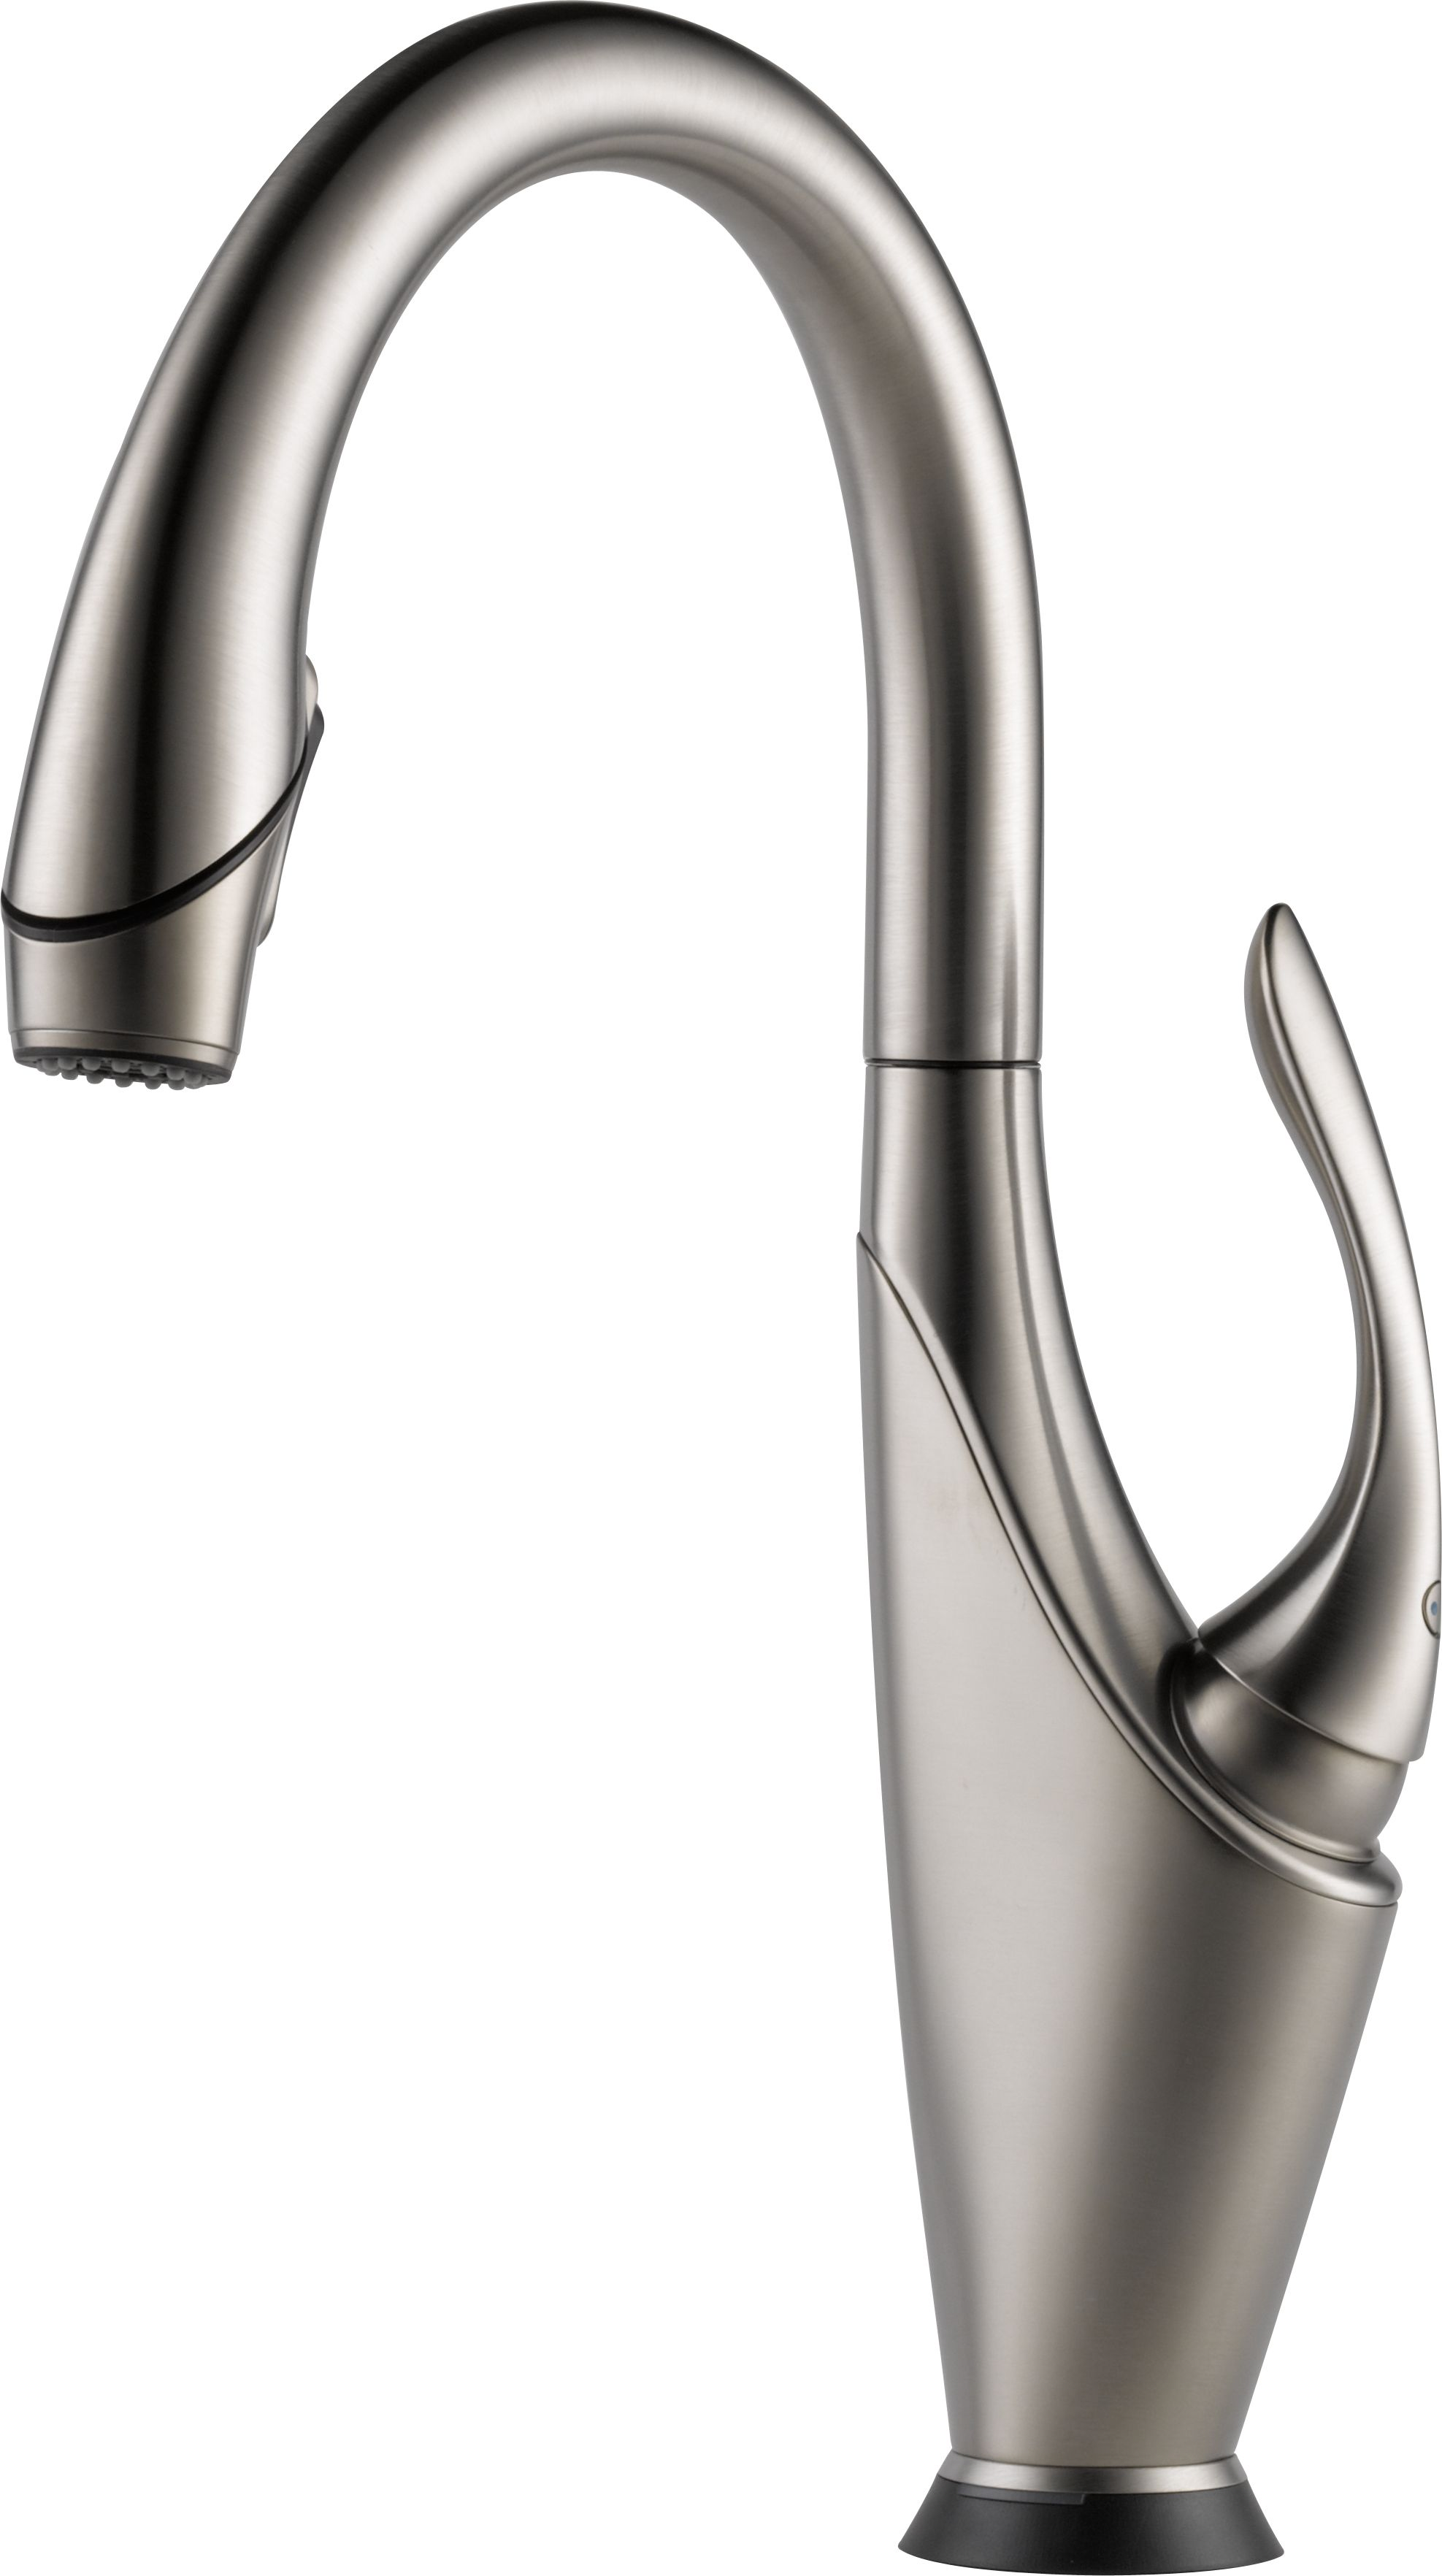 brizo lfss vuelo stainless single handle pulldown kitchen faucet with smarttouch technology p brizo kitchen faucets Brizo LF SS Vuelo Stainless Single Handle Pull Down Kitchen Faucet with Smarttouch Technology